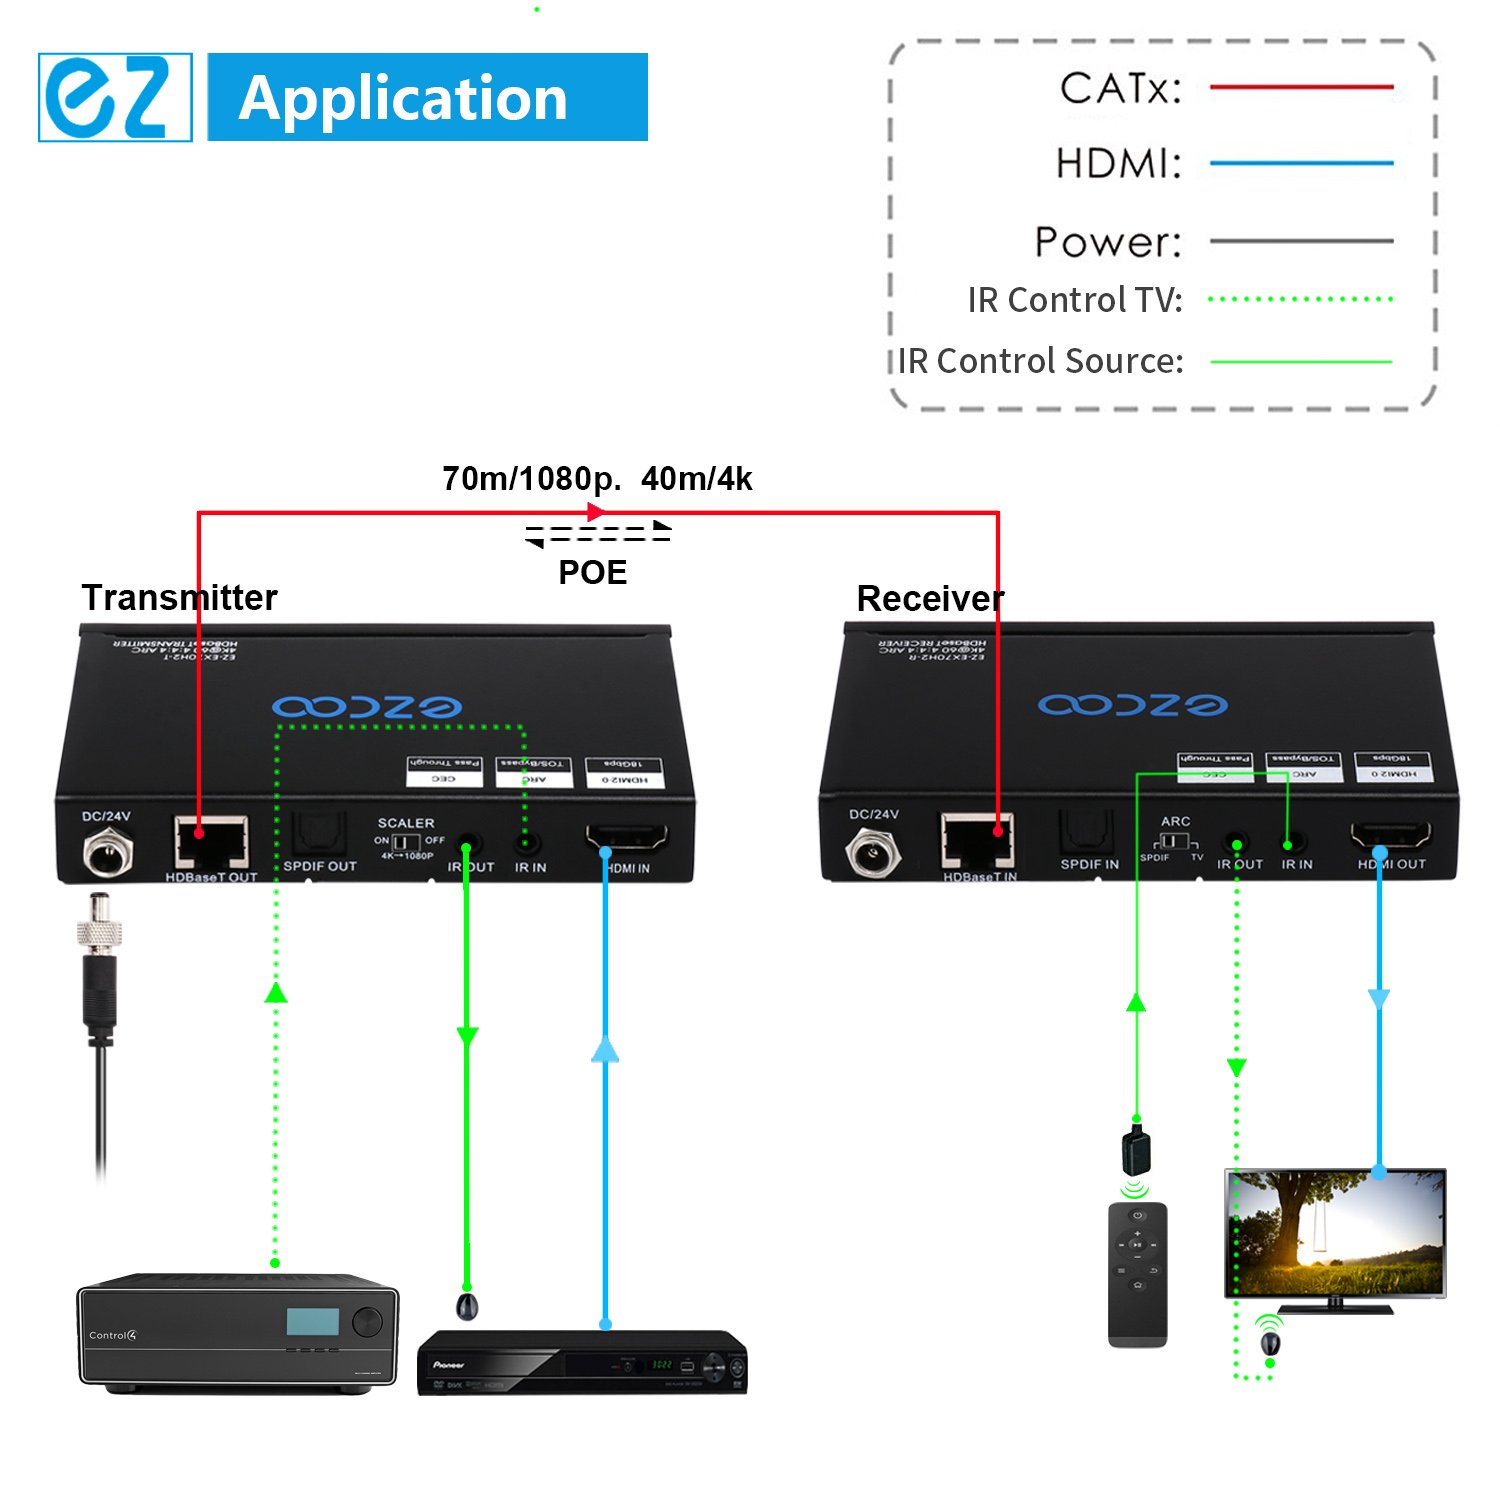 EZCOO 4K HDMI 2.0 Extender ARC HDR Scaler,HDBaseT Extender,Uncompressed 4K 60Hz 4:4:4 18Gbps HDCP 2.2 SPDIF, 4K/ 1080P Scaler Out, 230ft 1080P, 130ft 4K via Cat5e/6a, Bi-directional PoE+IR, CEC, DTS:X by EZCOO (Image #6)